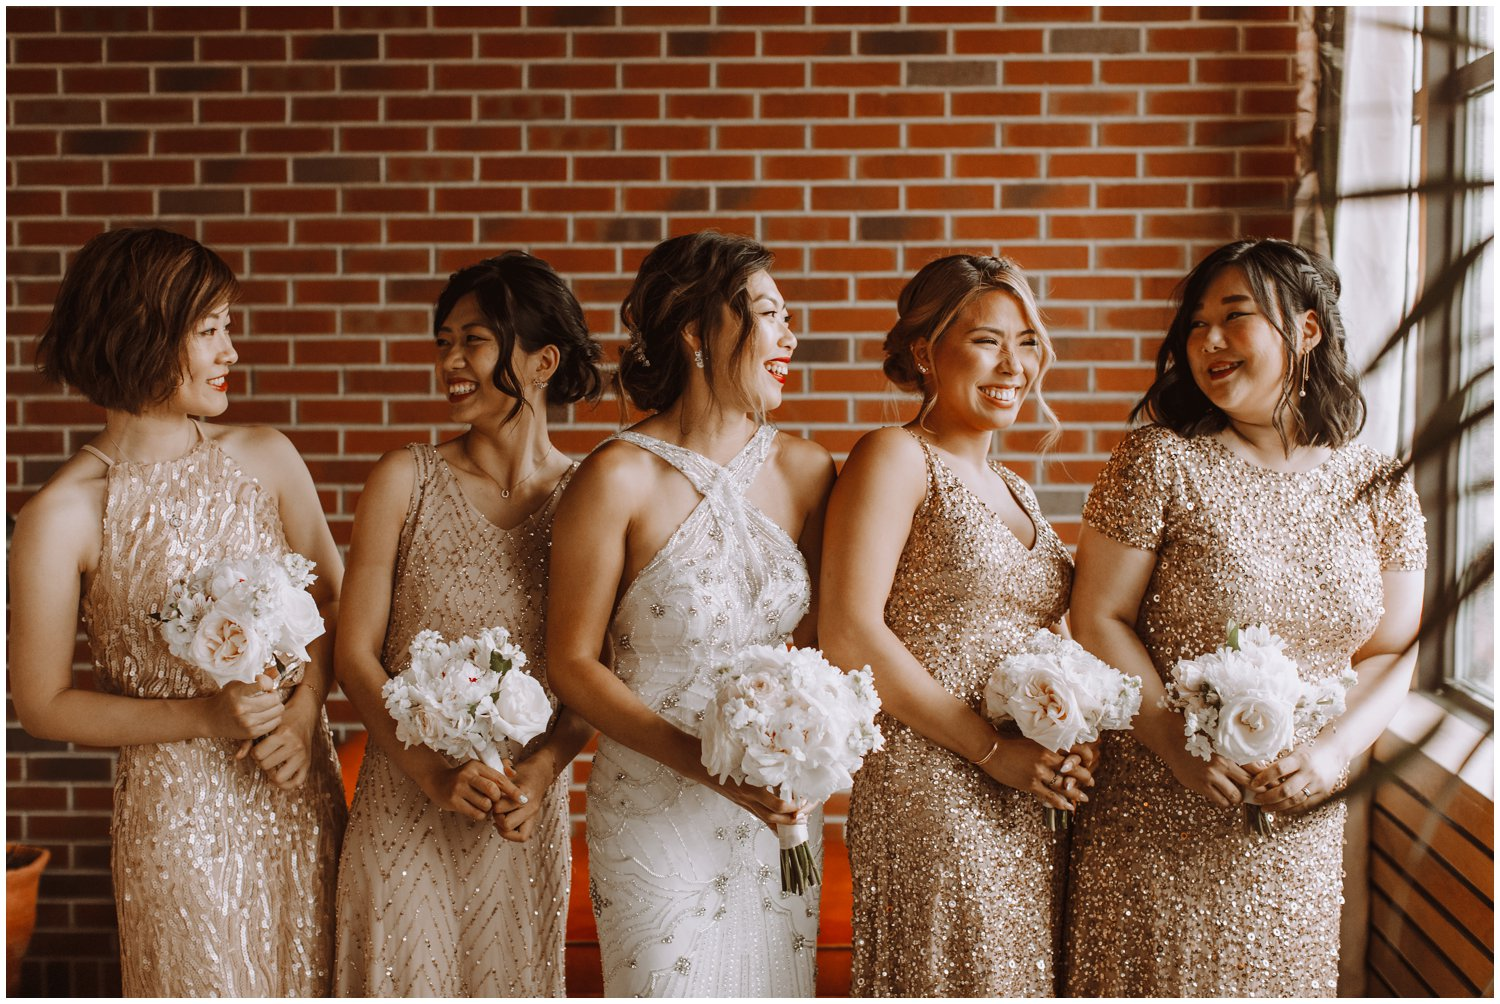 Peabody Library Wedding | Hotel Revival Baltimore Wedding | Baltimore Wedding Photographer | Art Deco Wedding Photography | Baltimore City Wedding | Kate Ann Photography